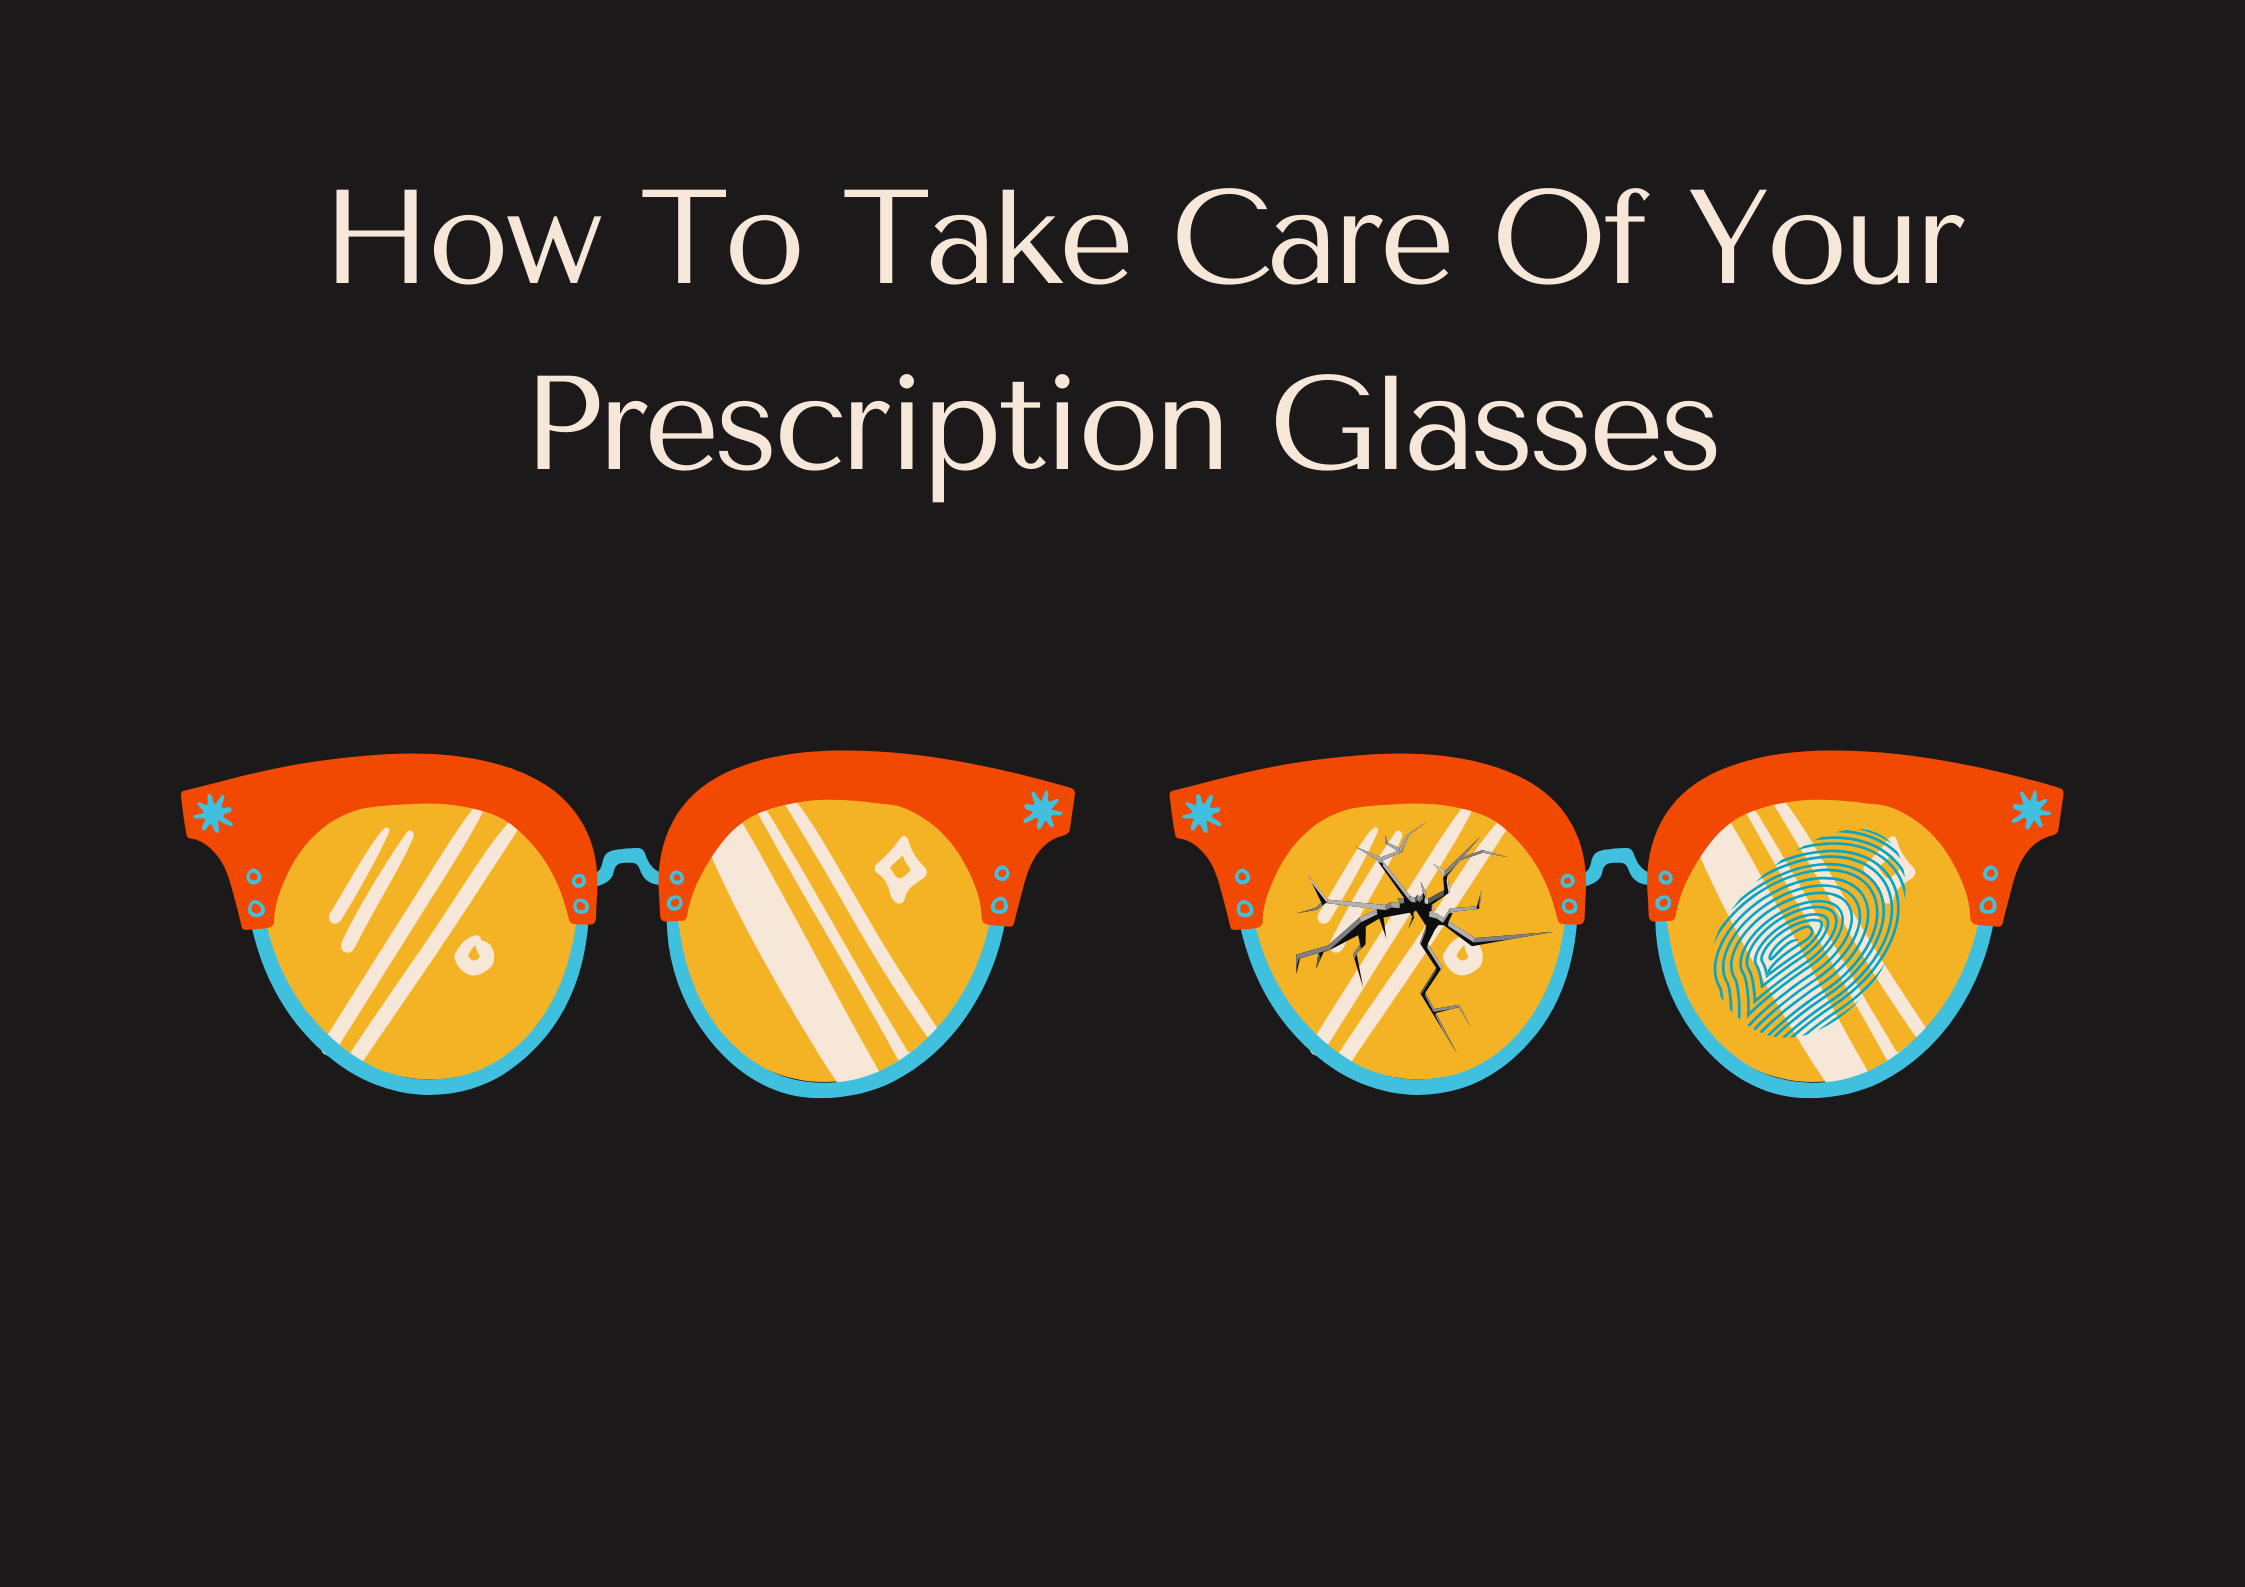 How-To-Take-Care-Of-Your-Prescription-Glasses